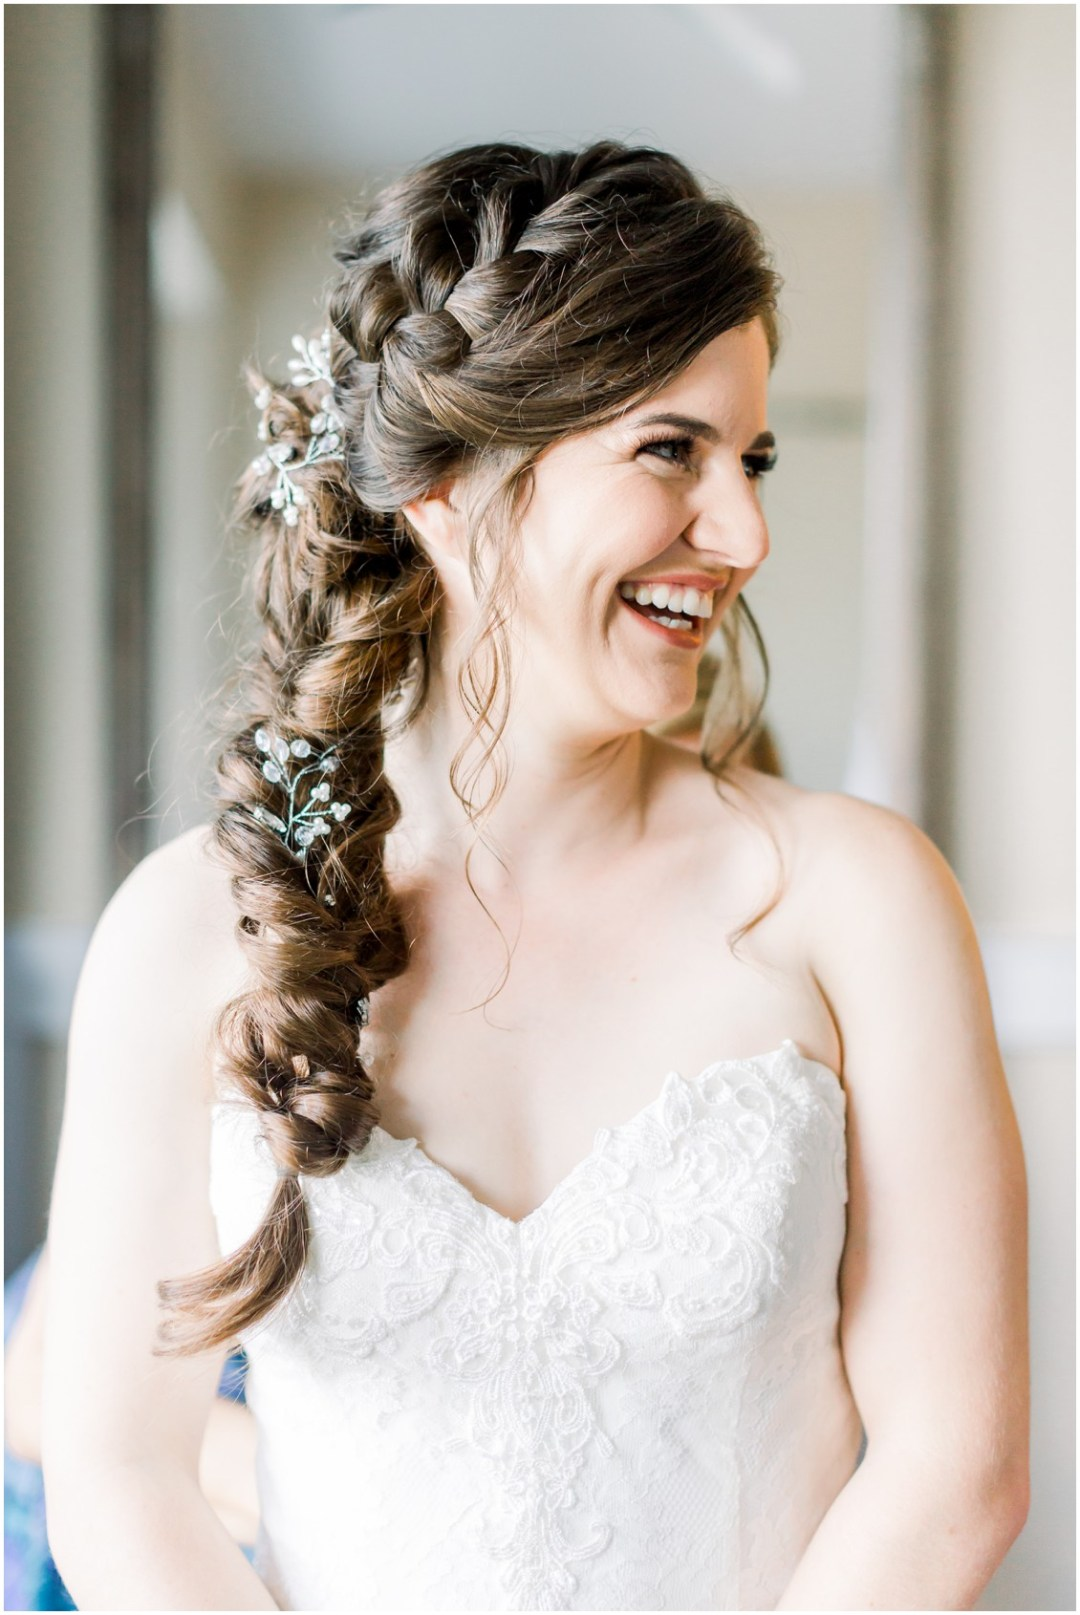 Bride with side braid and strapless wedding gown. | My Eastern Shore Wedding |